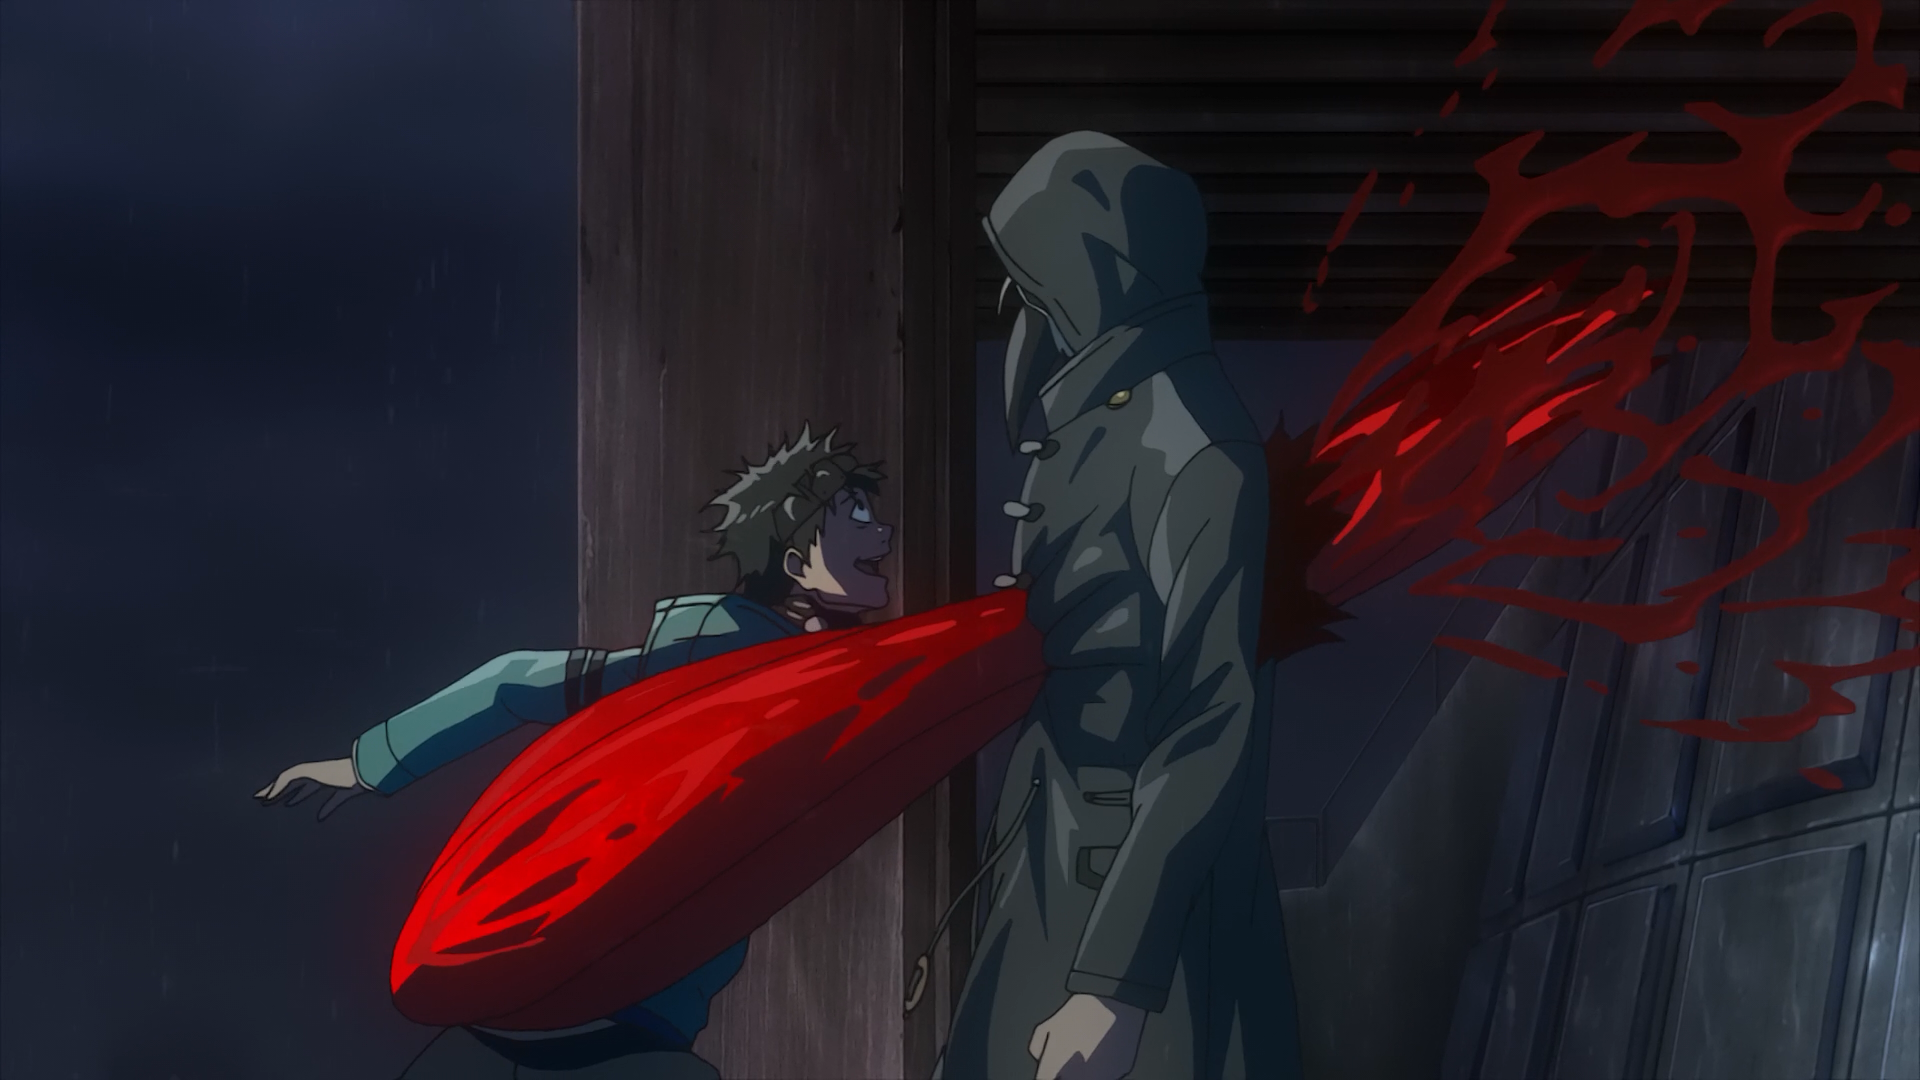 Datei:Kaneki attacking Yomo.png